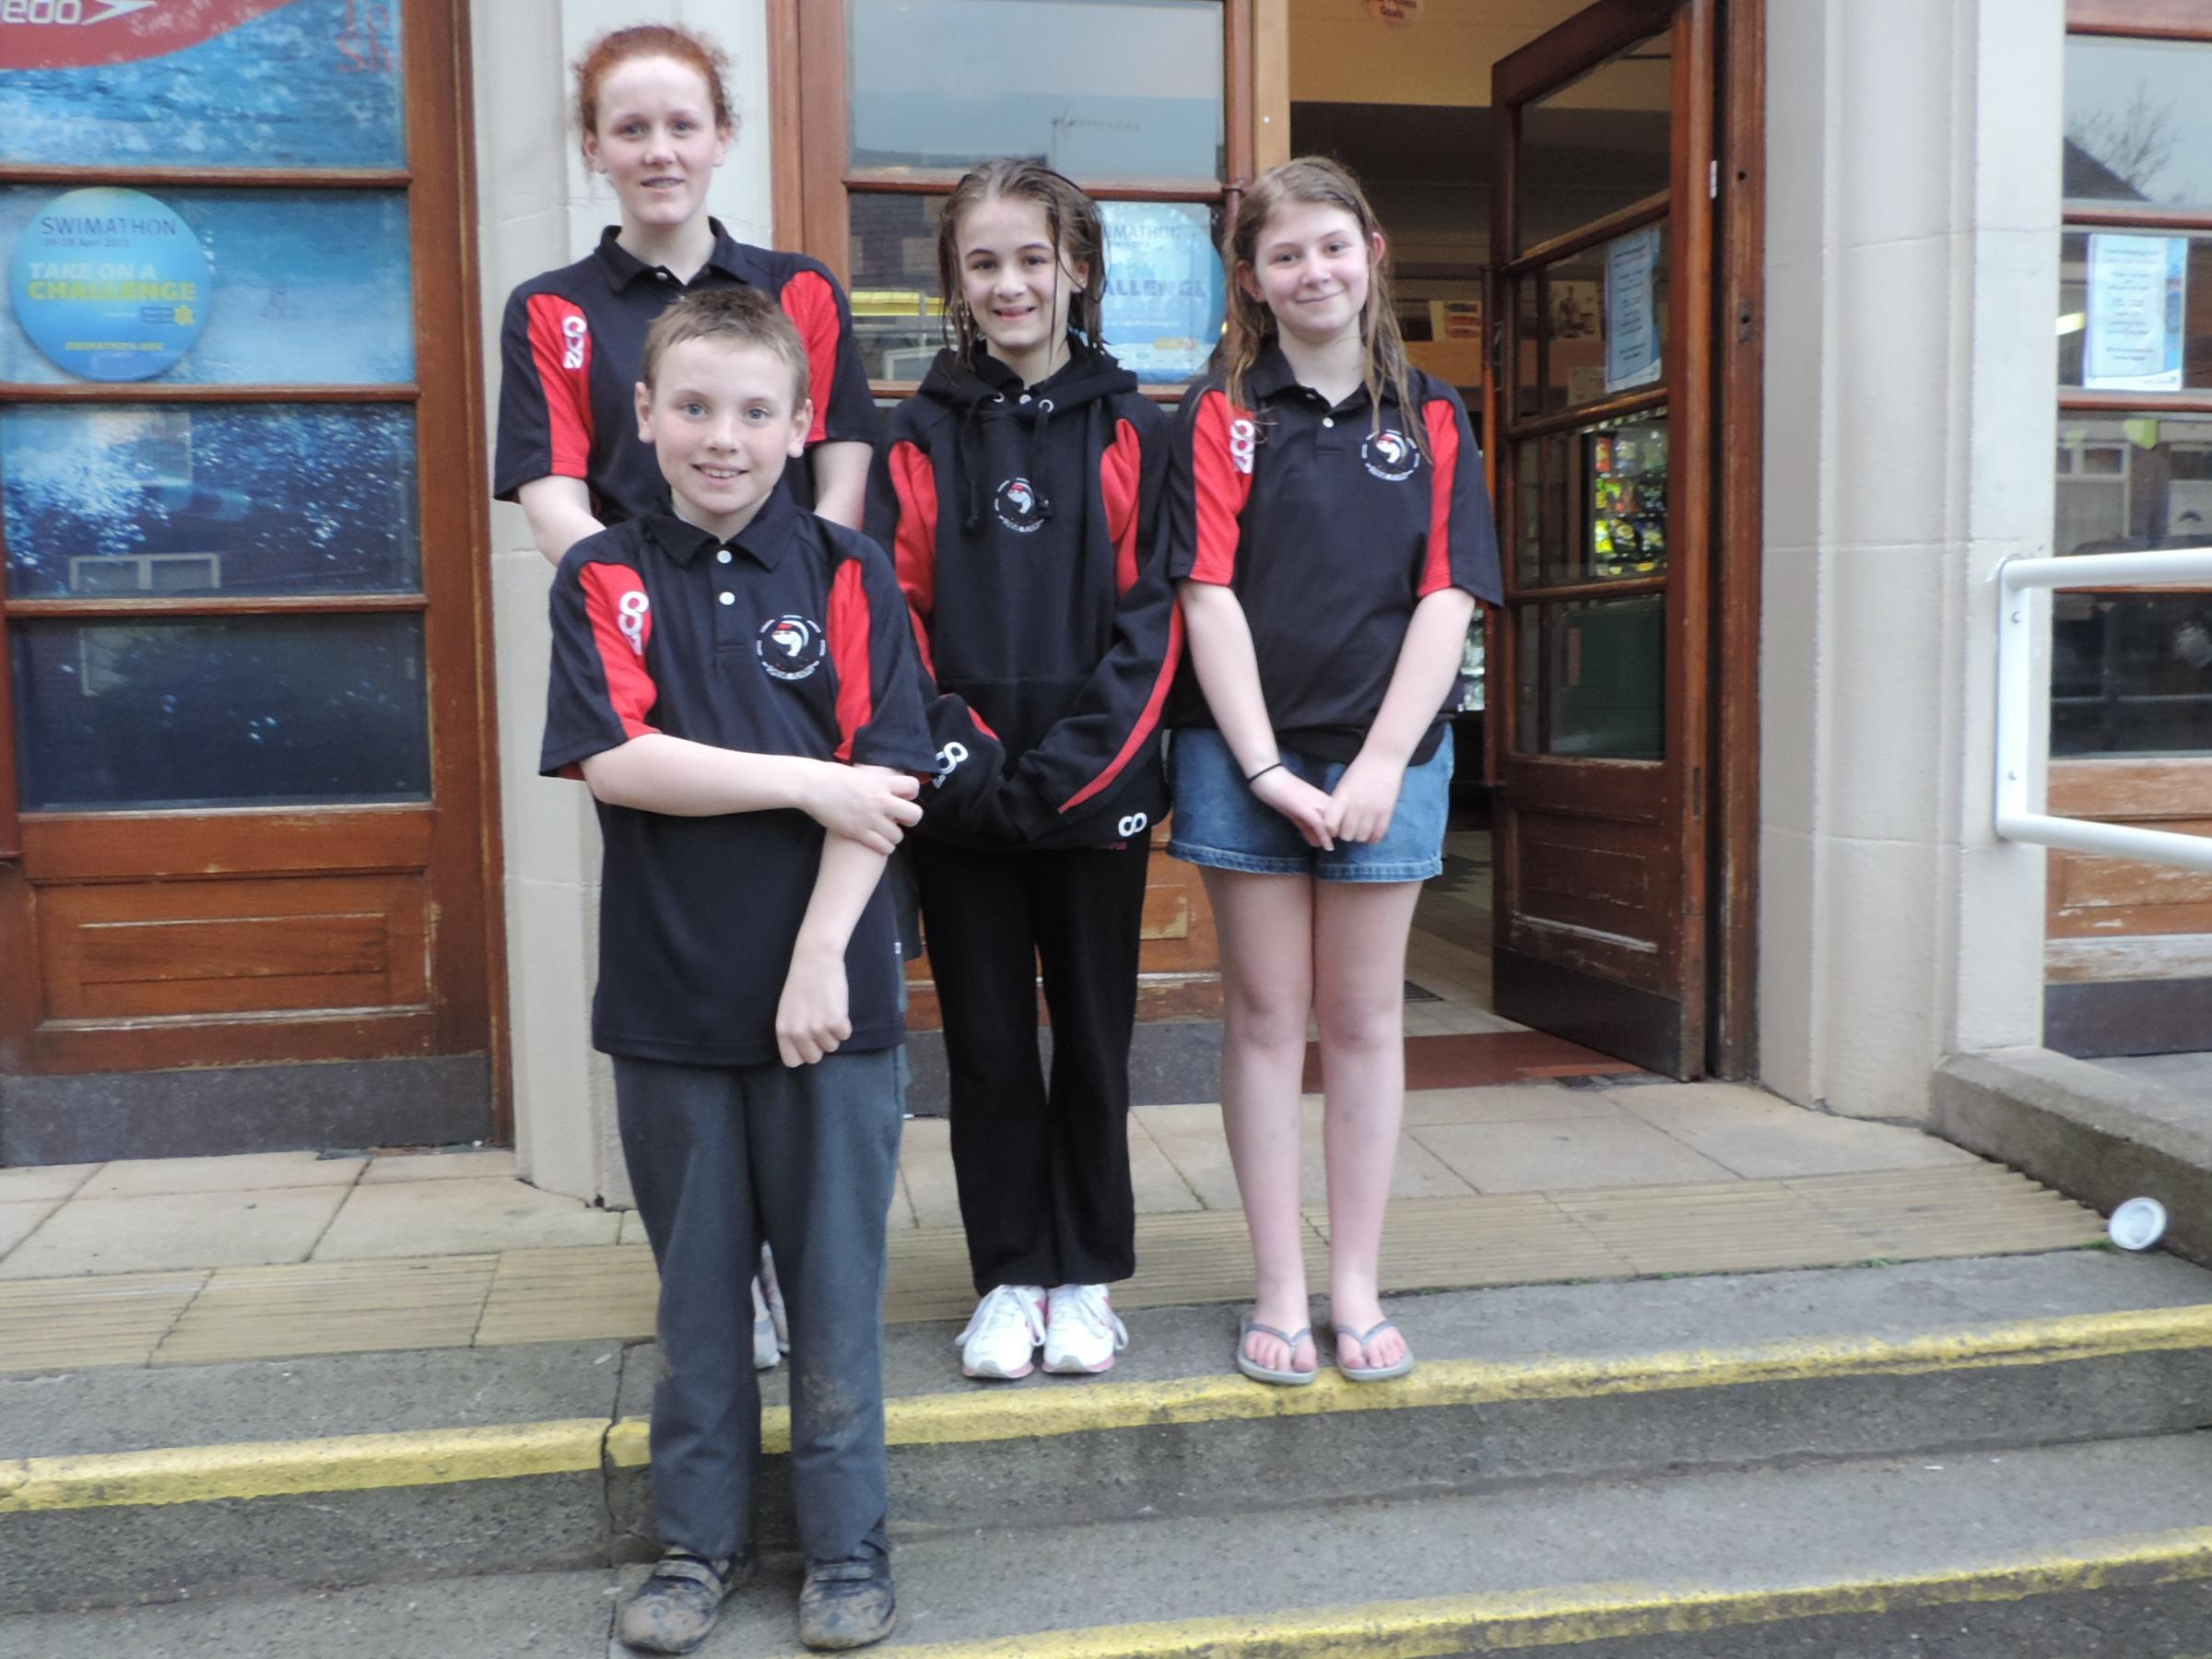 Youngsters perform well in county championships